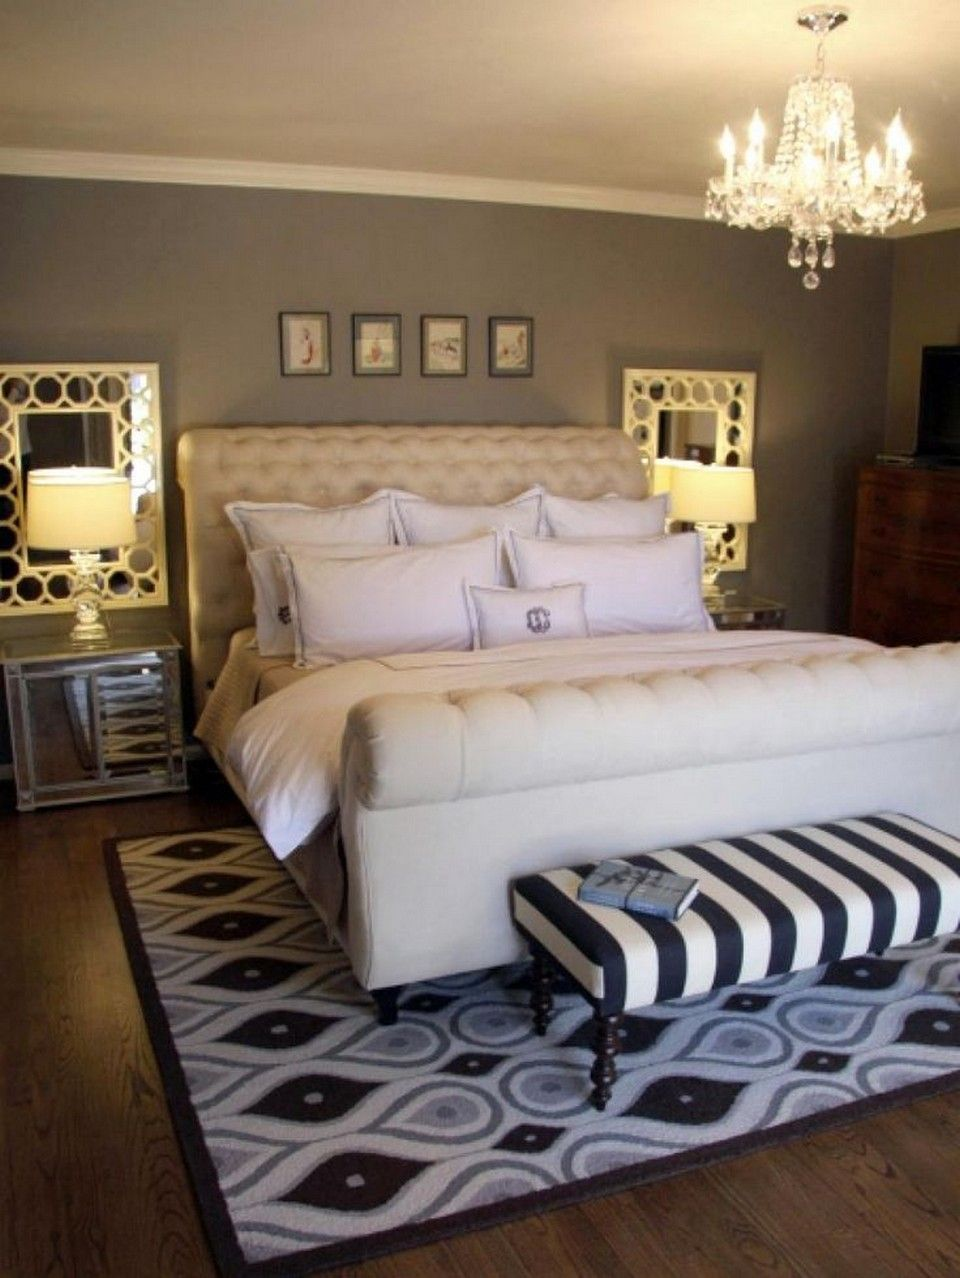 Bedroom Design Ideas On A Budget Glamorous 95 Brilliant Romantic Bedroom Design Ideas On A Budget  Romantic Decorating Design